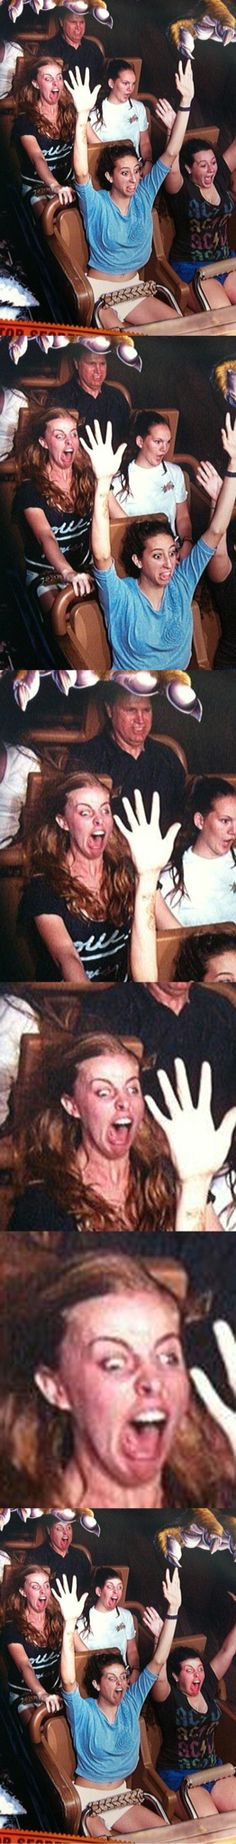 Funny Humor Laughing So Hard Laughter 33 Super Ideas Super Funny, Funny Cute, Really Funny, Hilarious, Can't Stop Laughing, Laughing So Hard, People Laughing, Foto Fails, Roller Coaster Pictures